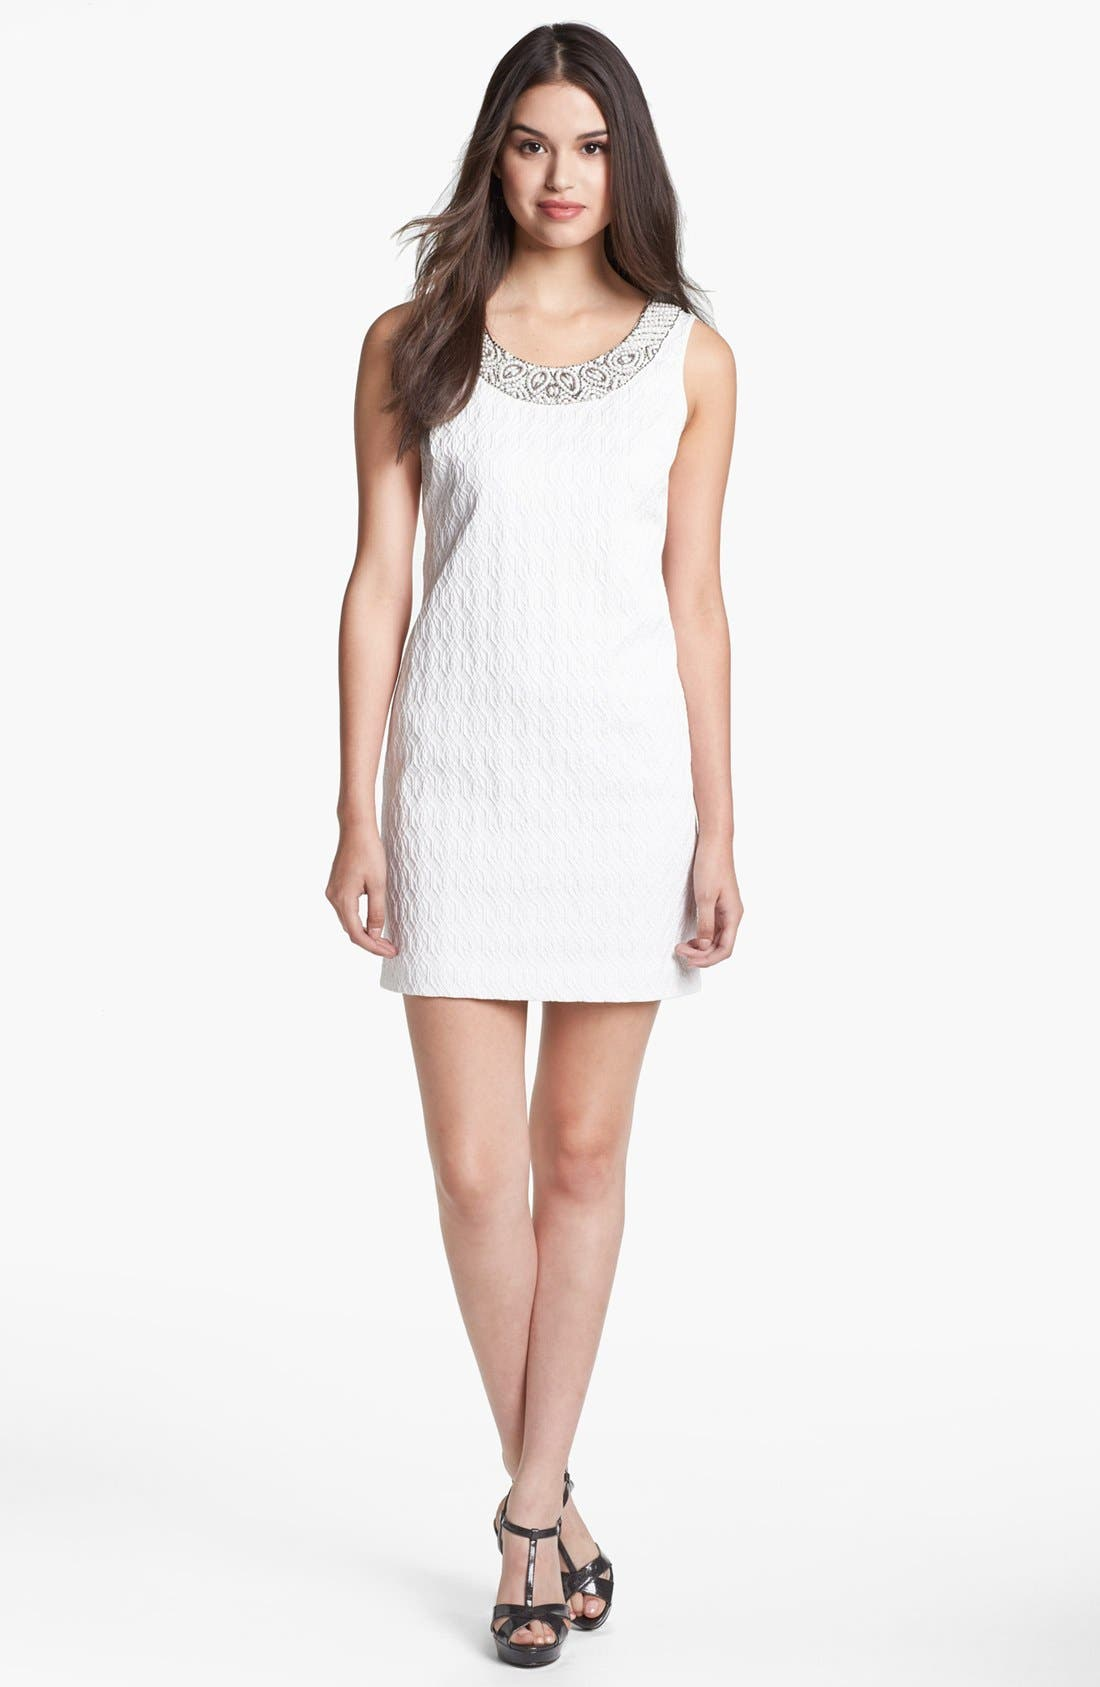 Alternate Image 1 Selected - Adrianna Papell Embellished Jacquard Shift Dress (Petite)